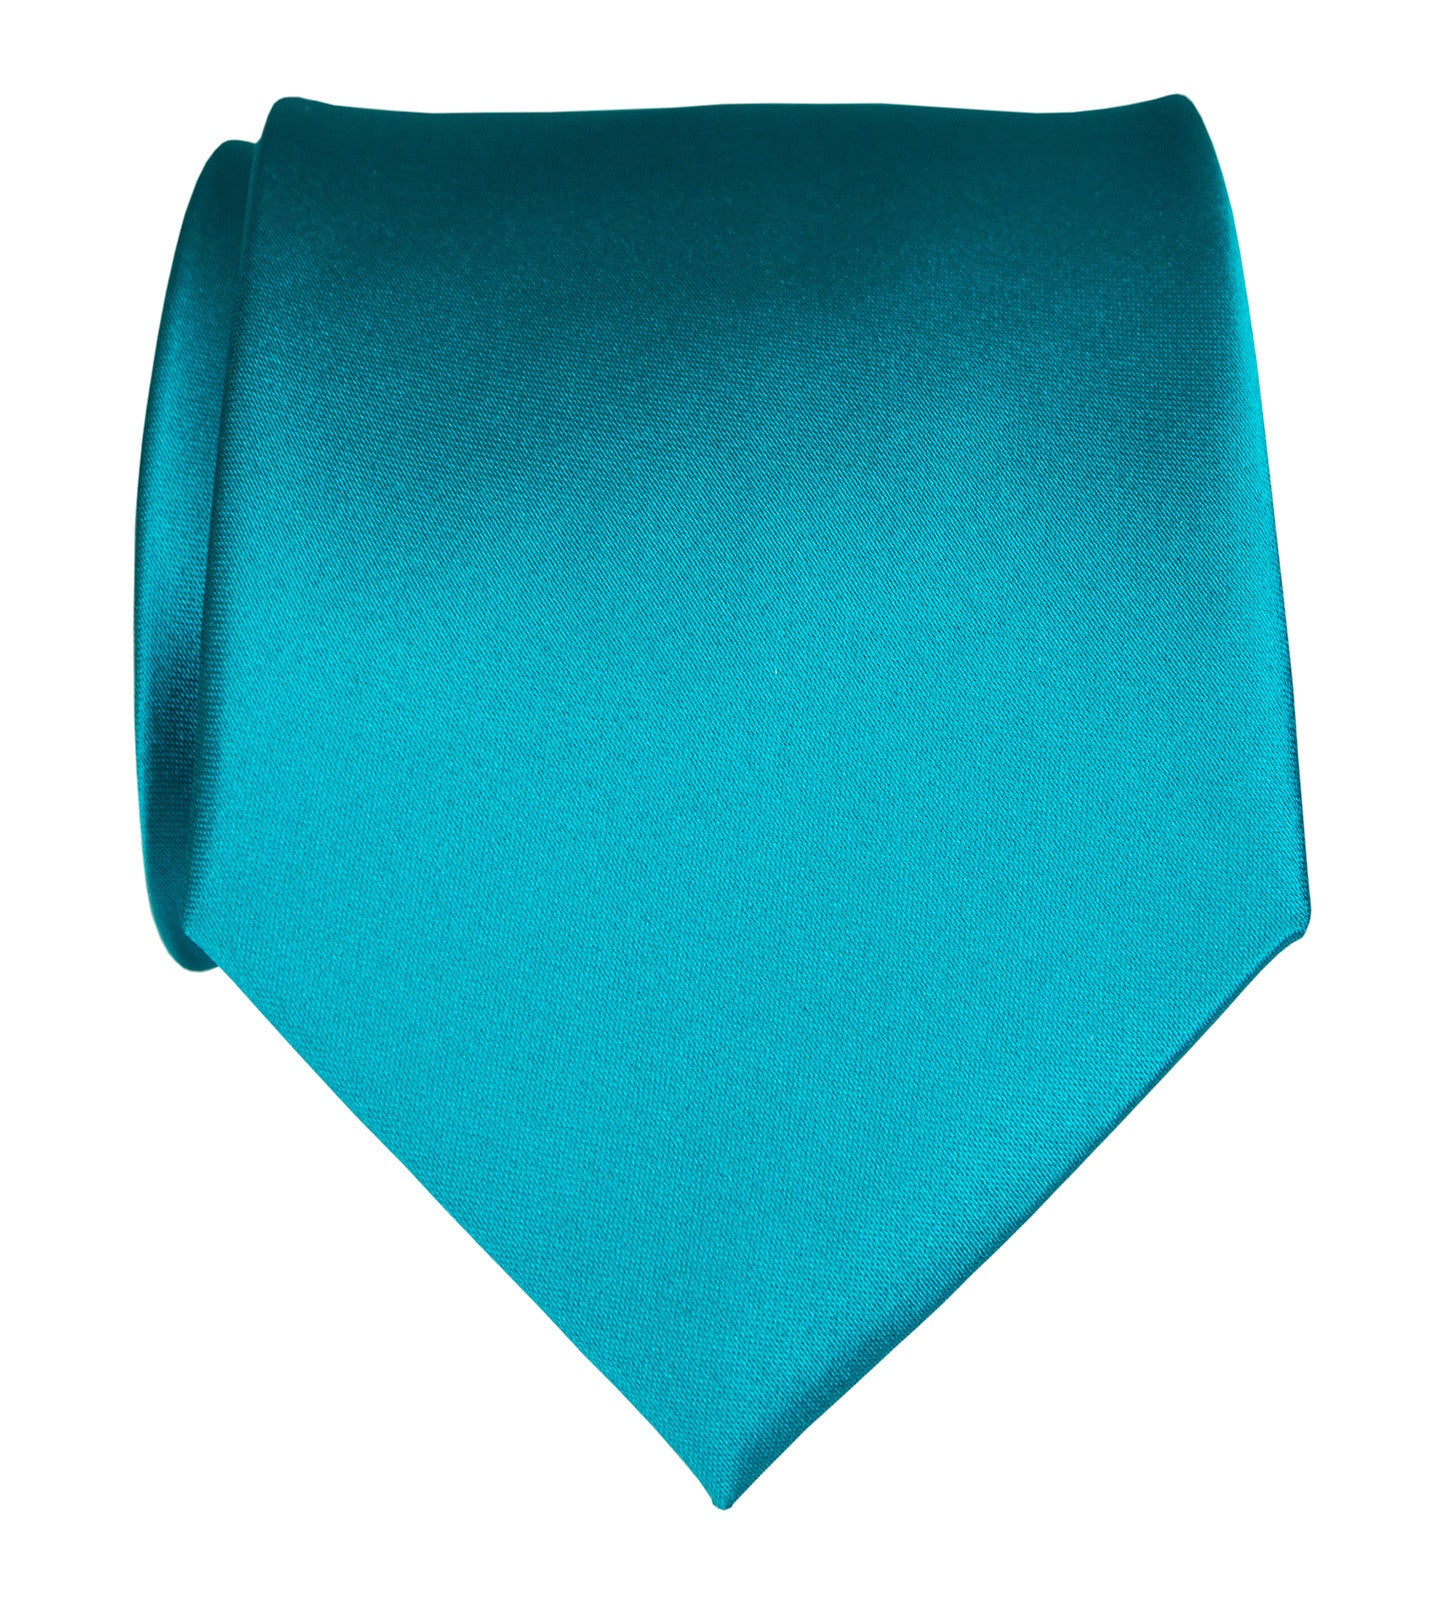 Teal Blue Necktie Light Blue Solid Color Satin Finish Tie No Print